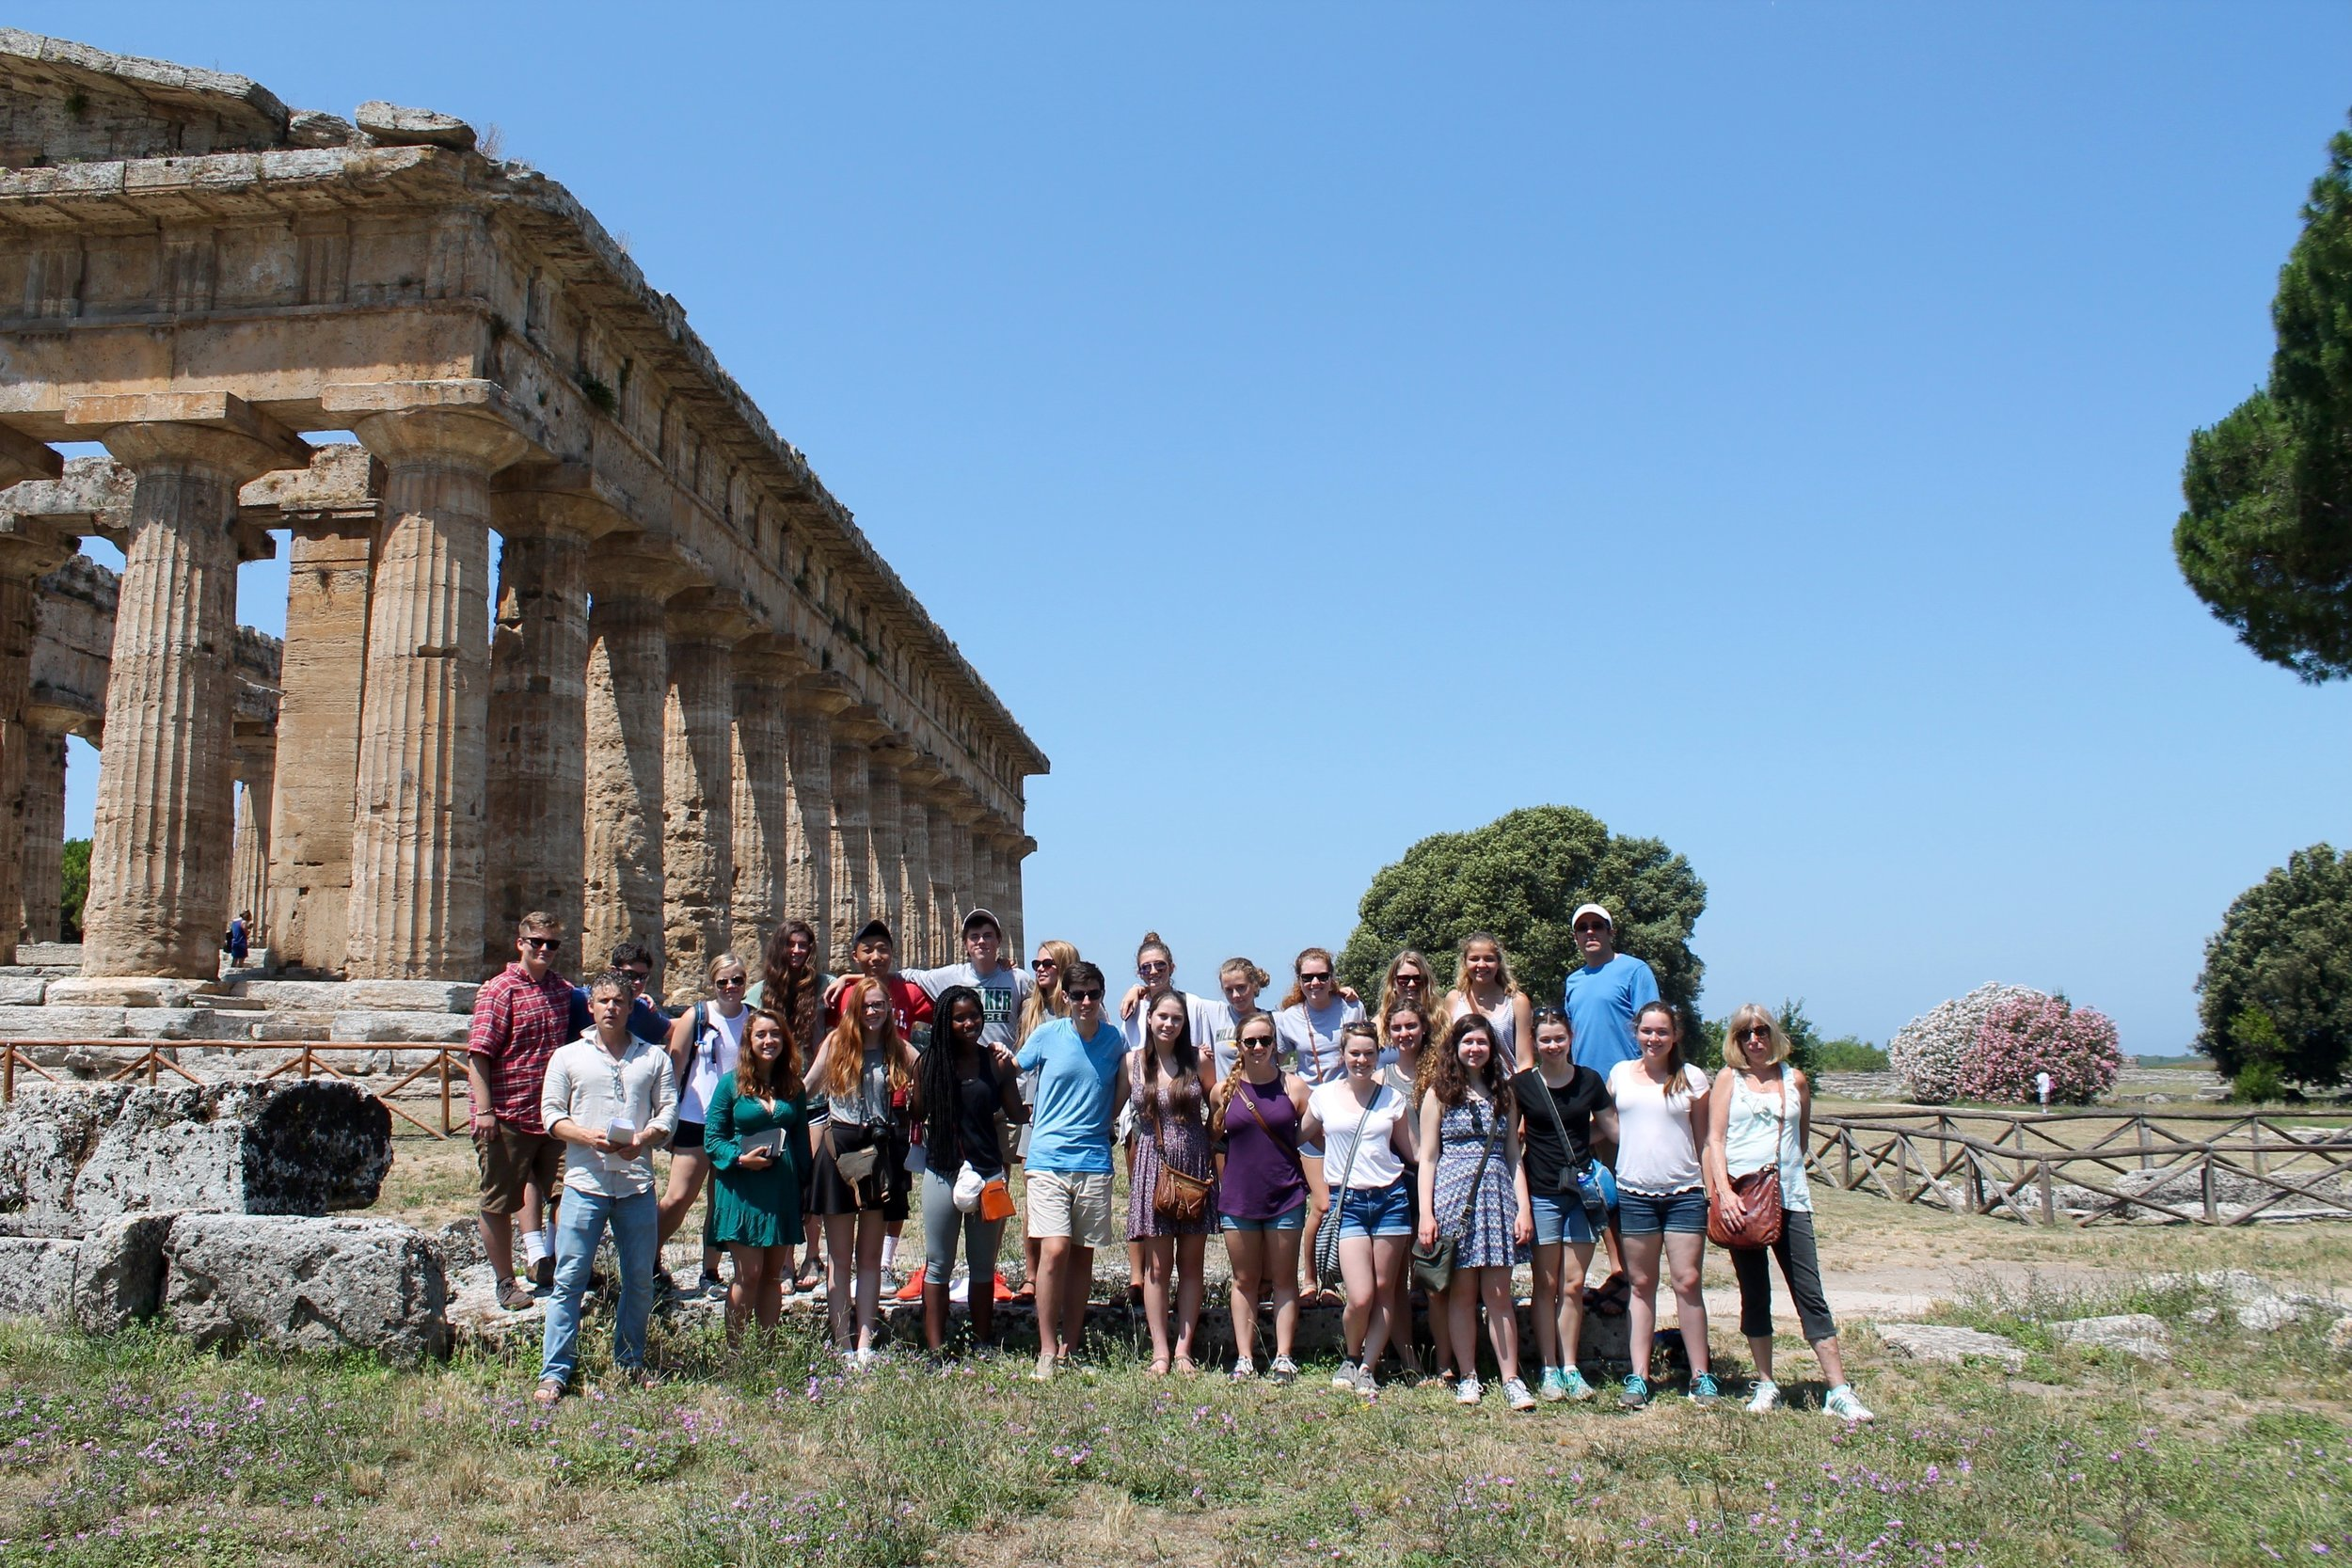 paestum group picture.jpg